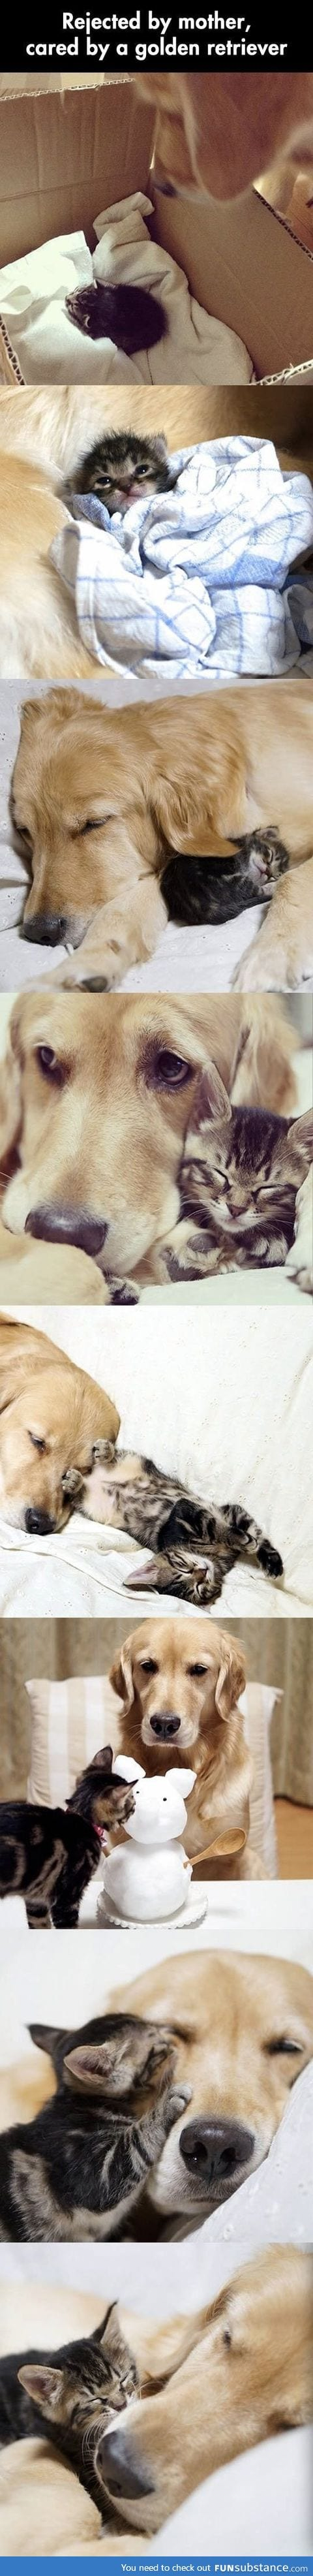 Golden retriever adopts a kitten abandoned by its mother